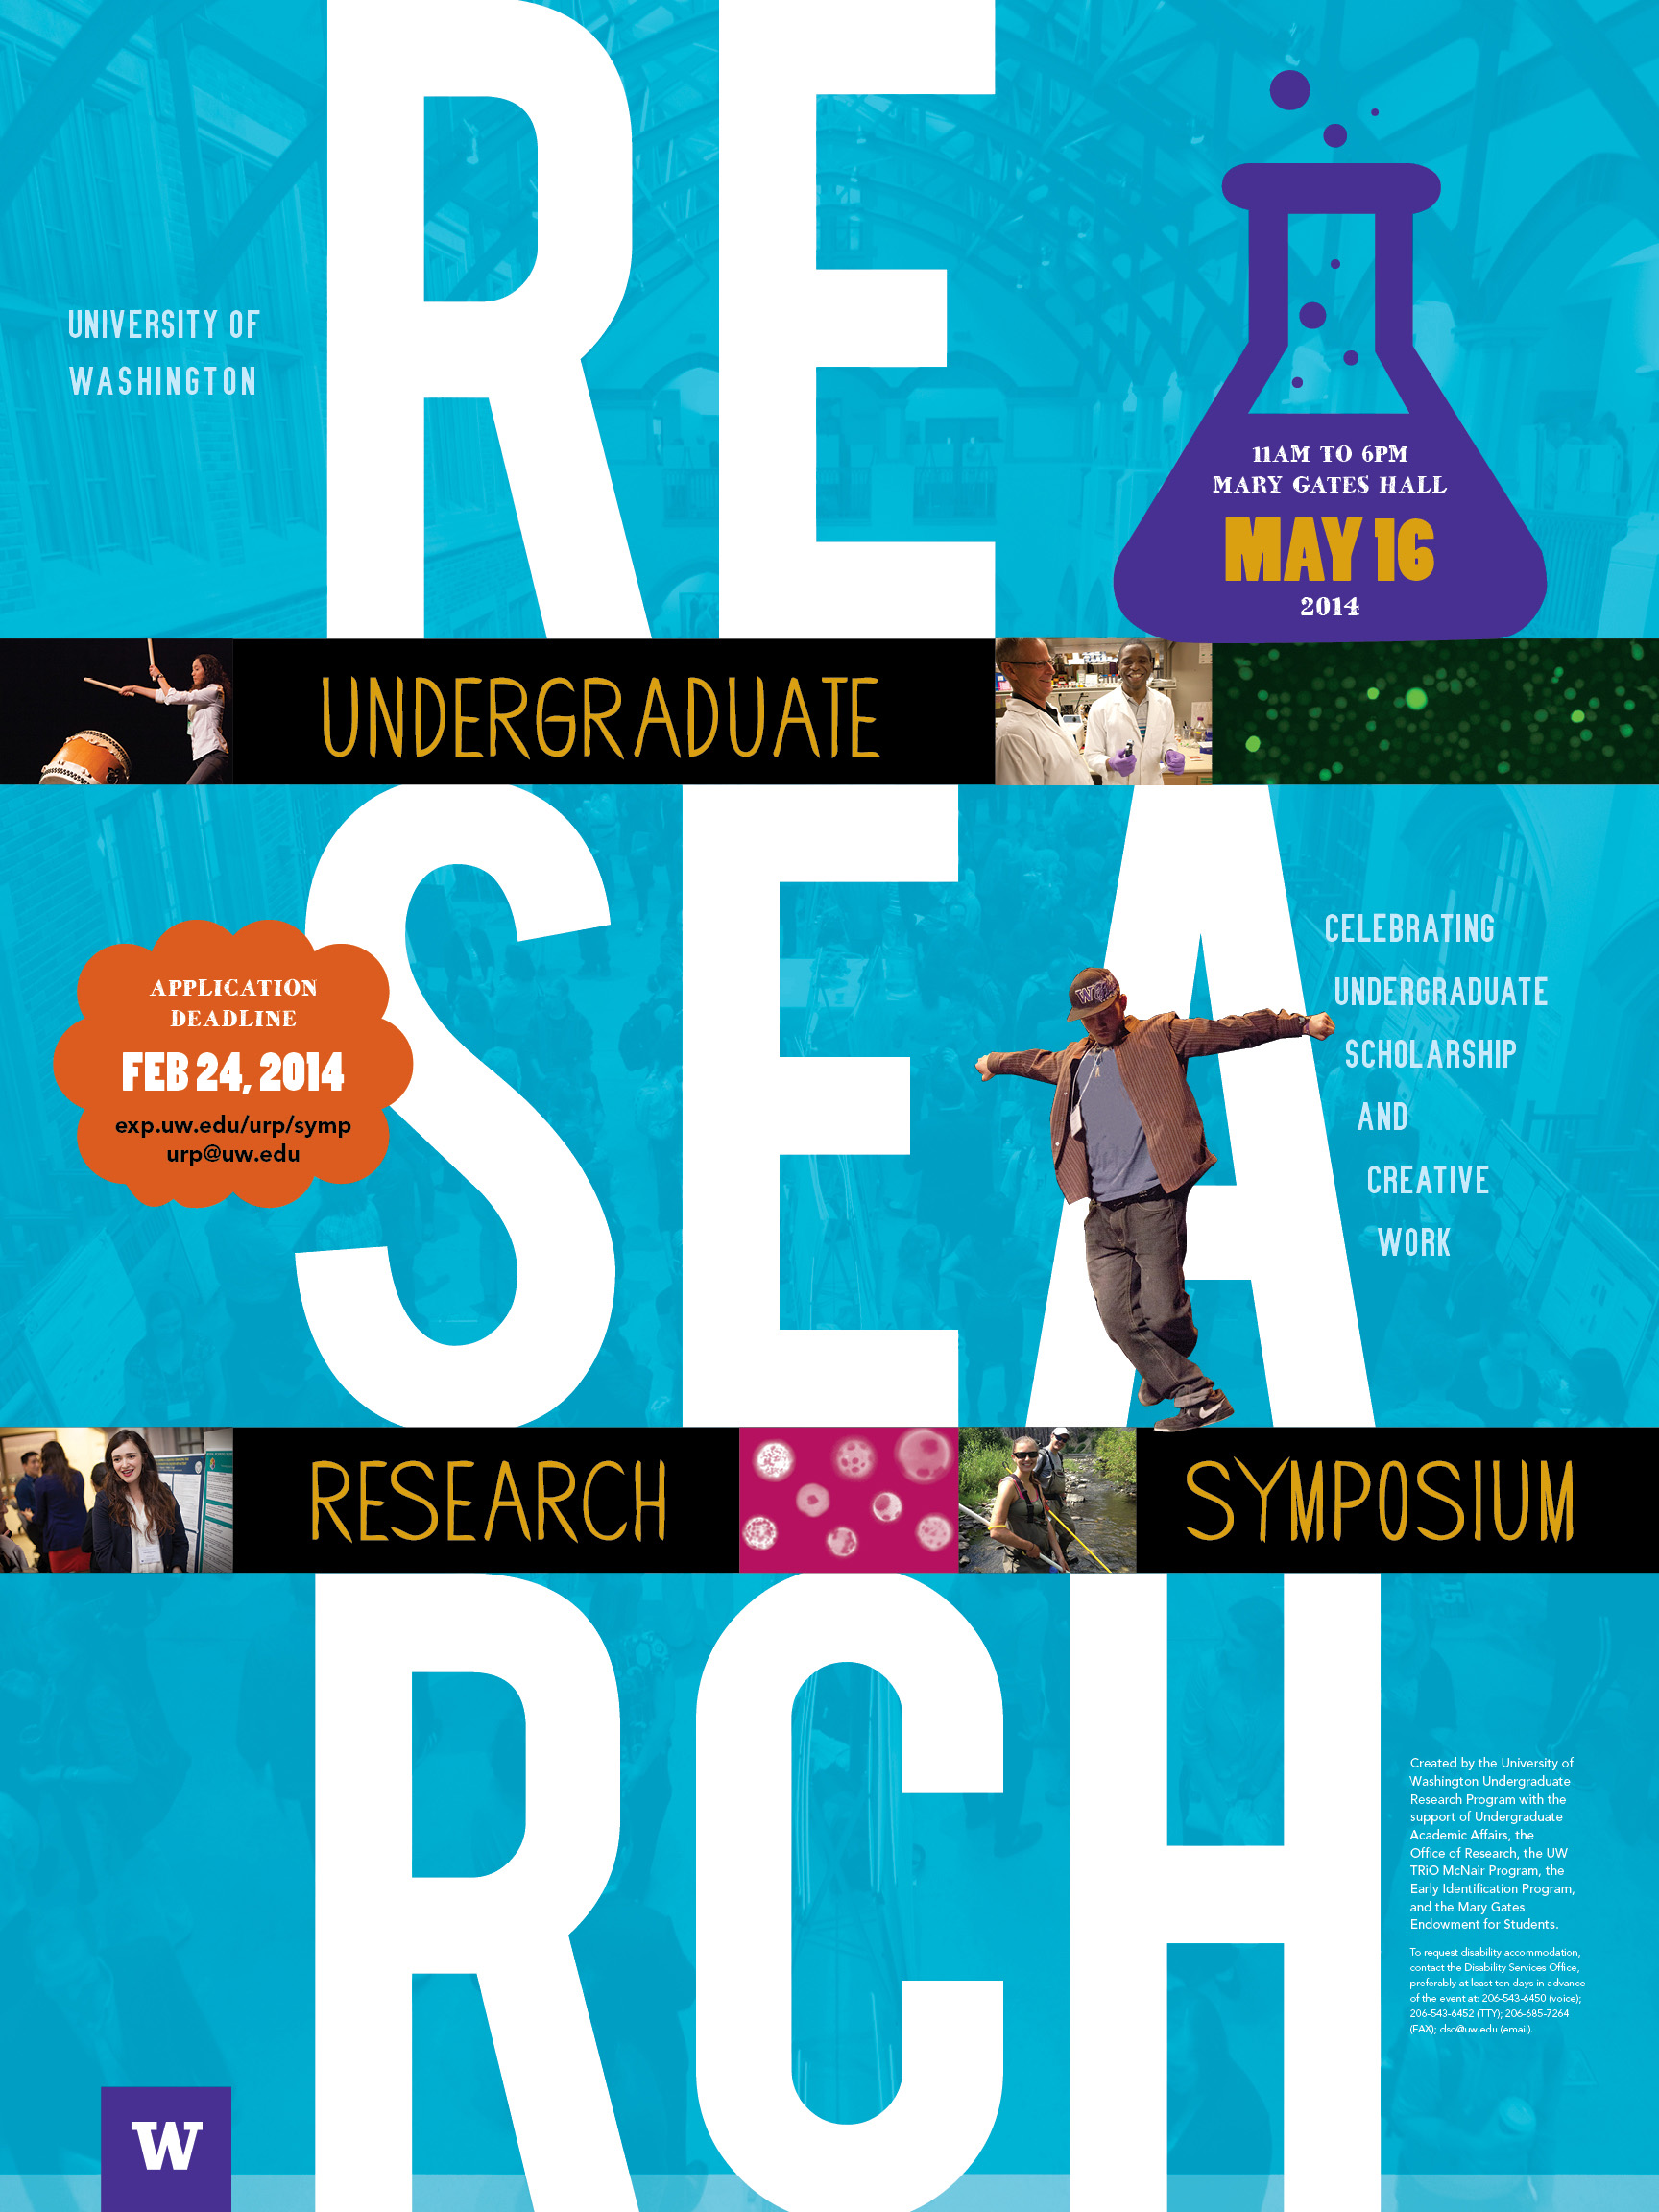 Poster design for symposium - 17th Annual Uw Undergraduate Research Symposium